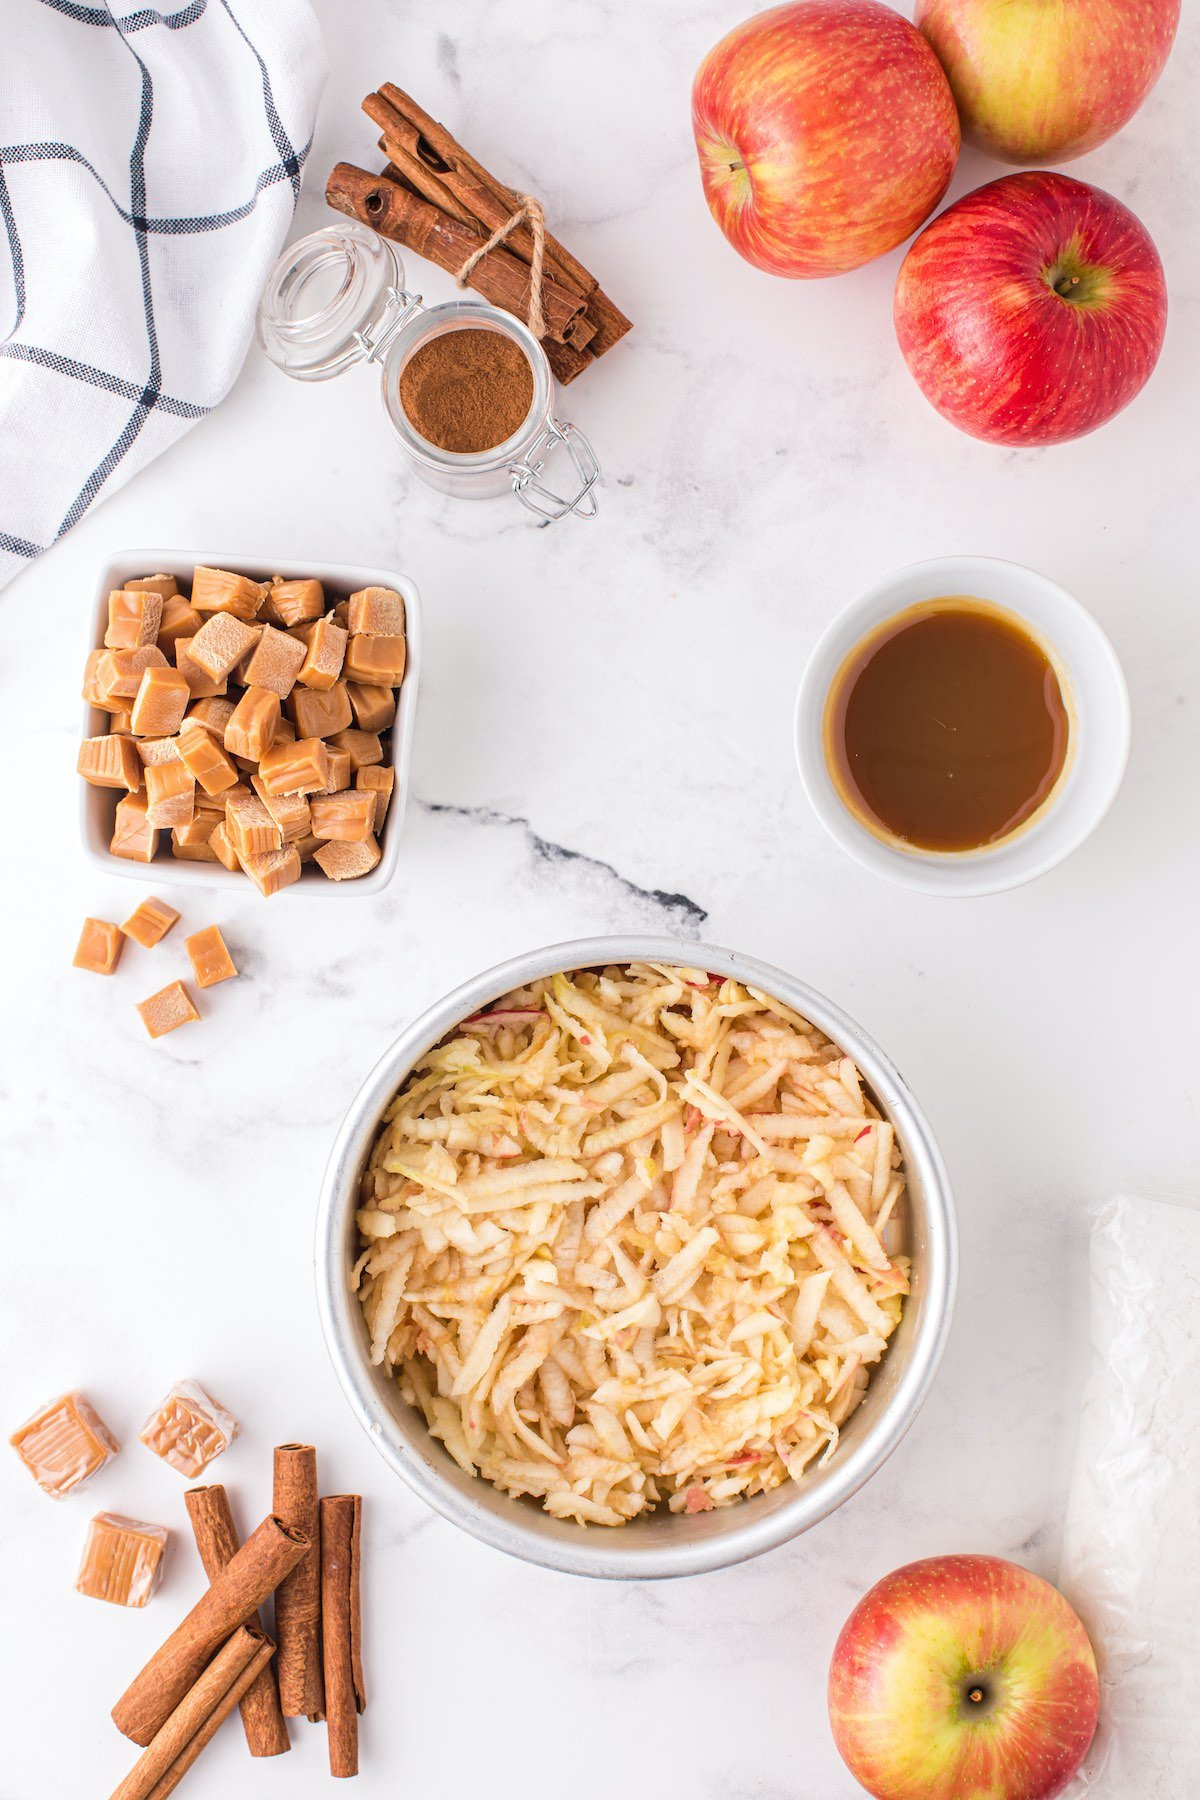 place shredded apples in cake pan